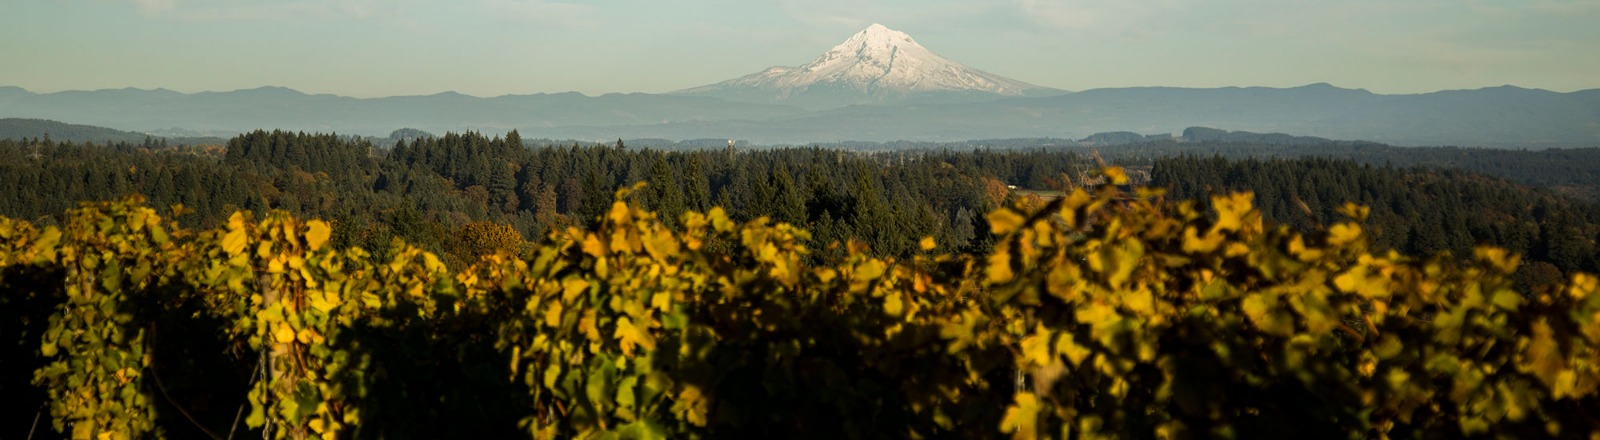 view of Mt. Hood and vines below from Pete's Mountain Vineyard in Oregon's Mt. Hood Territory